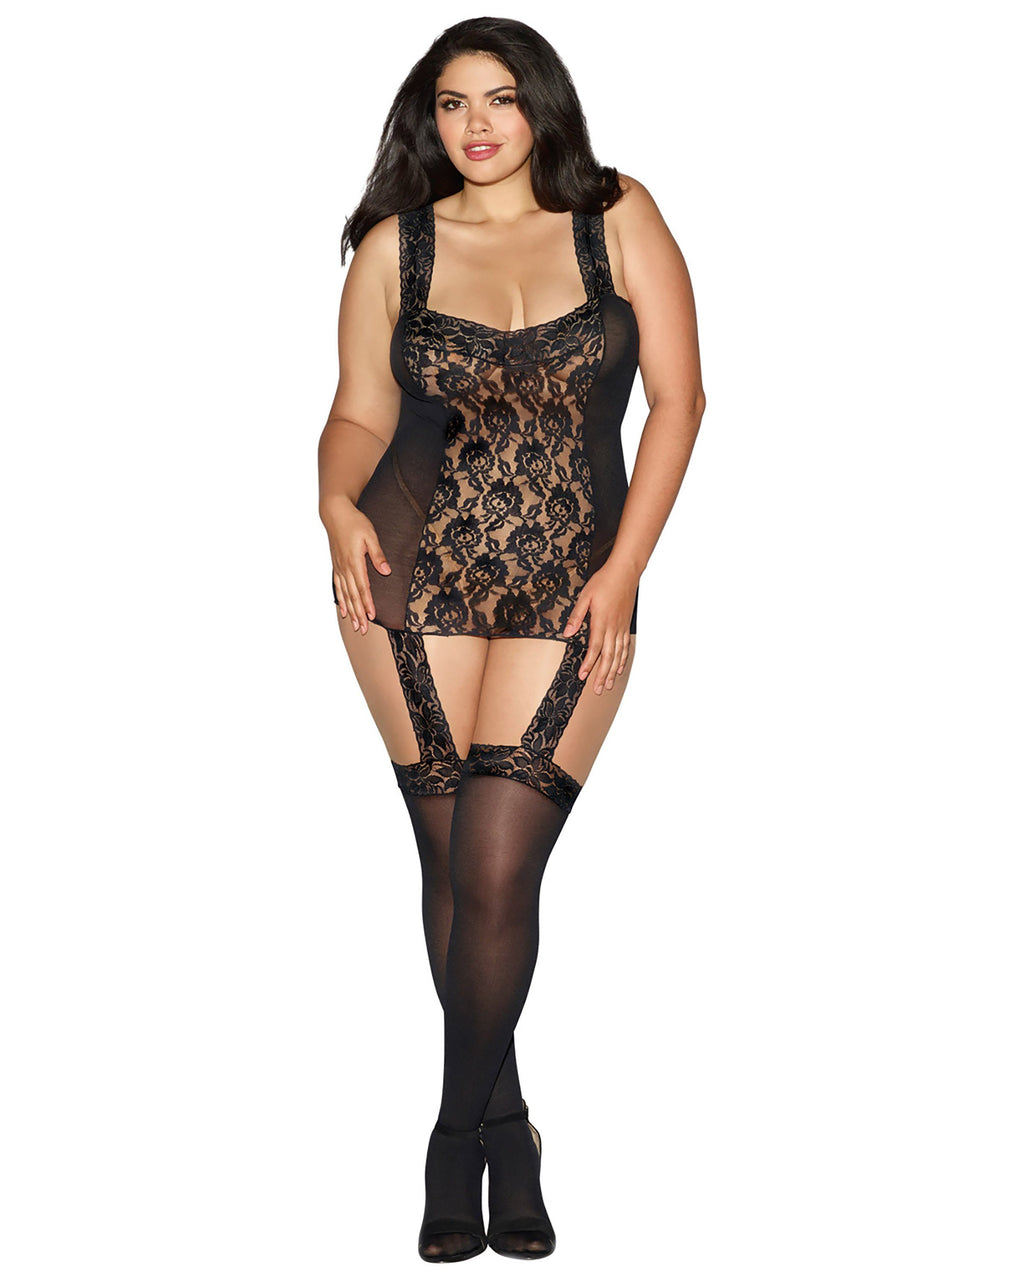 Plus Size Rose Lace Gartered Bodystocking Garter Dress Dreamgirl International